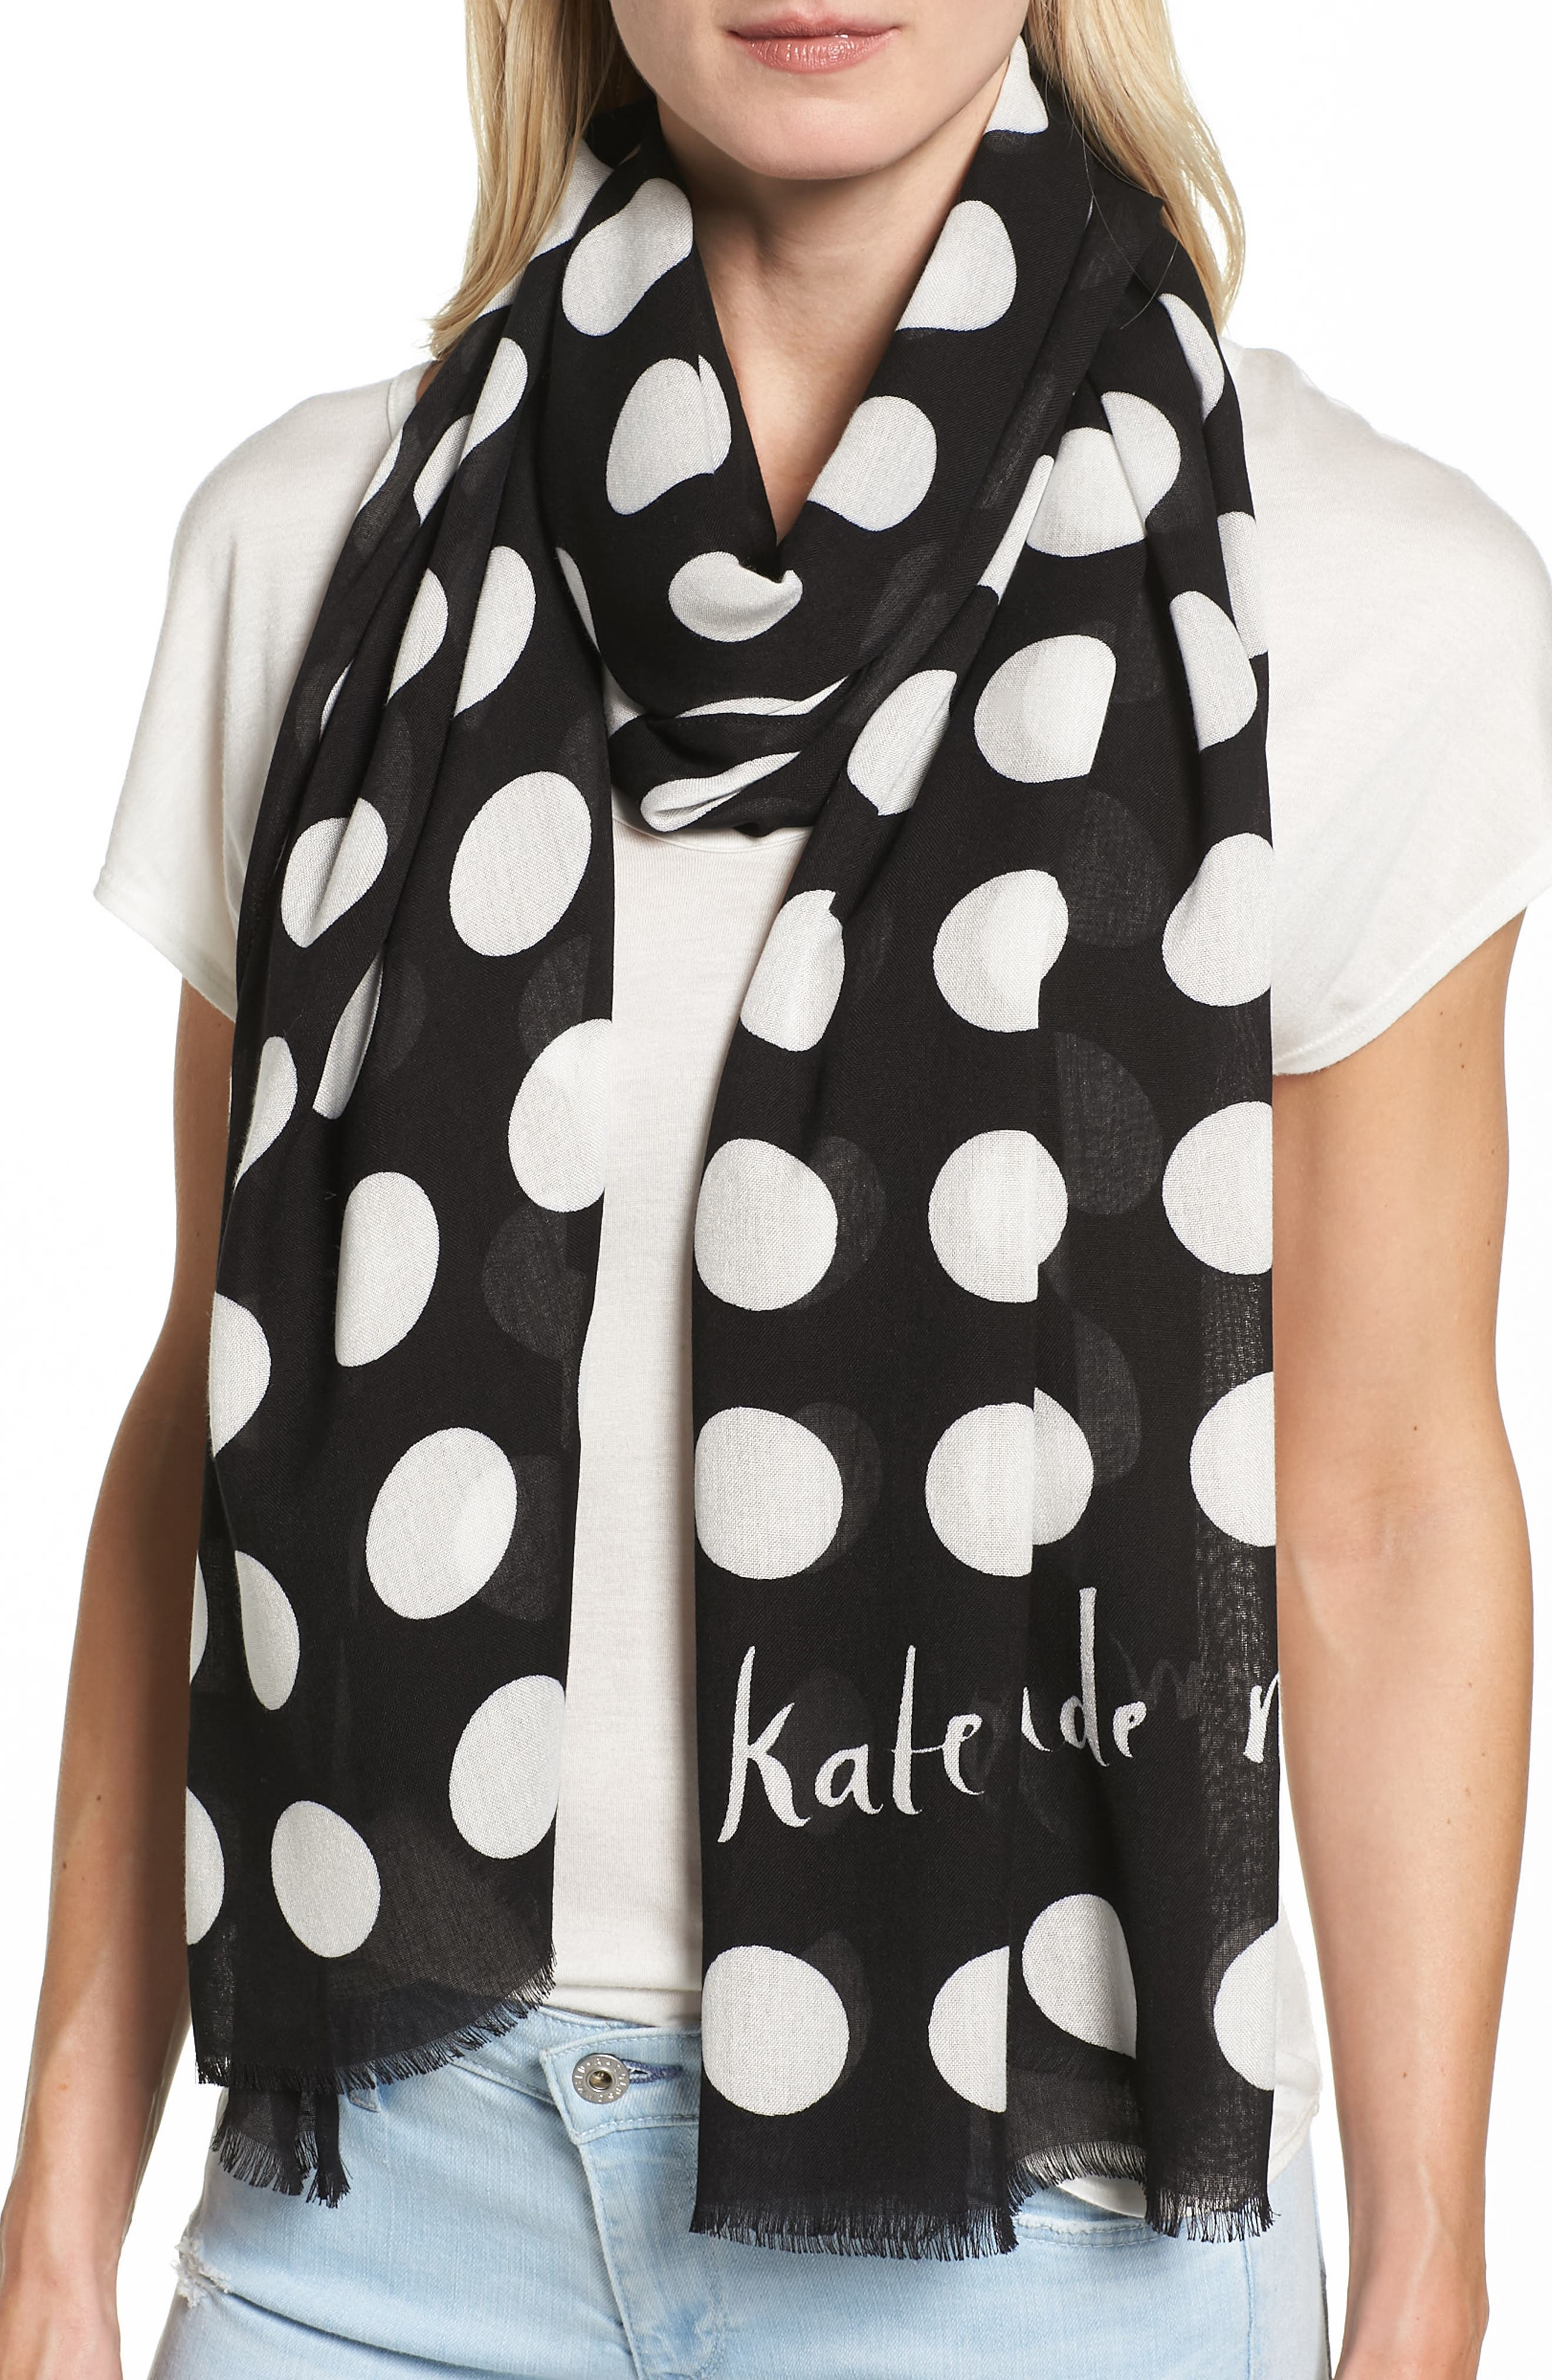 KATE SPADE NEW YORK grid dot scarf